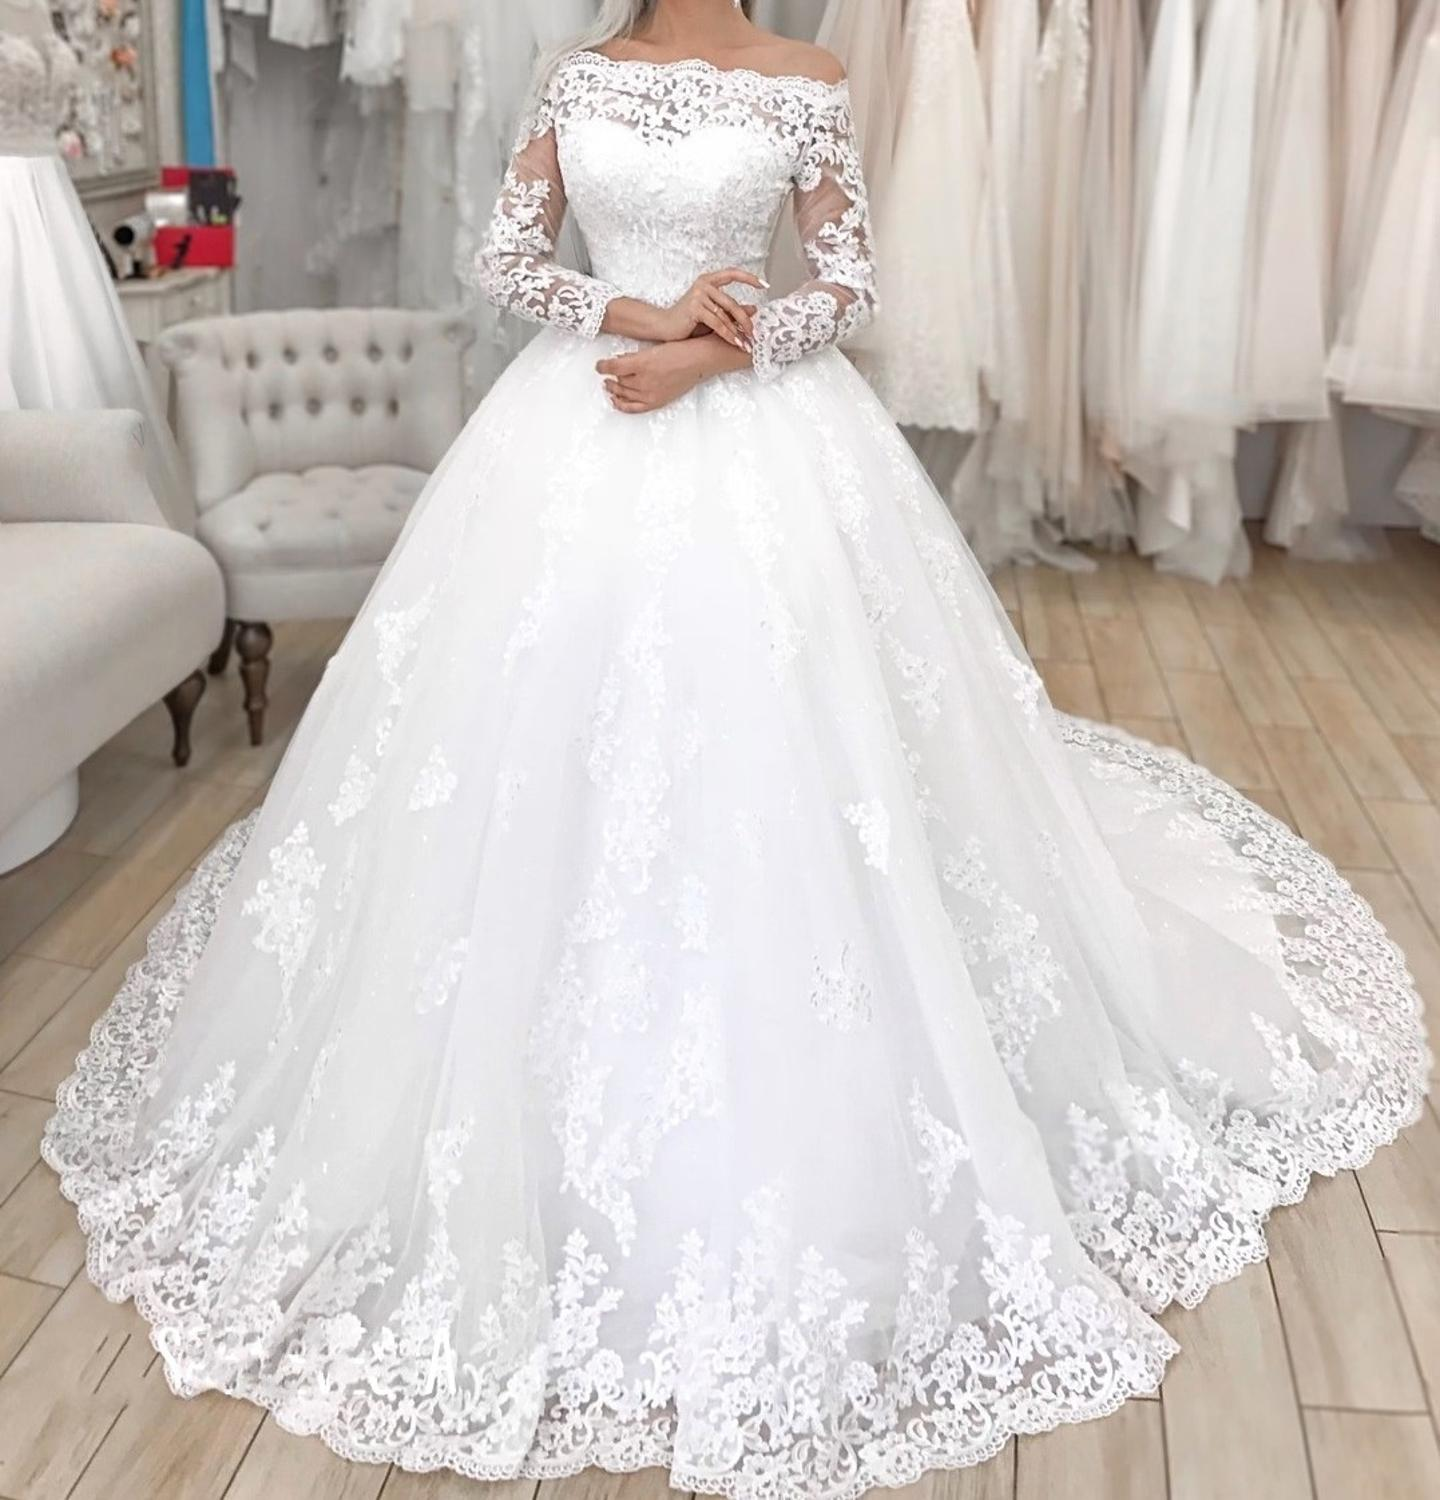 Immagini Abiti Da Sposa.Sexy Women Simple Vintage Abito Da Sposa 2019 Wedding Gowns